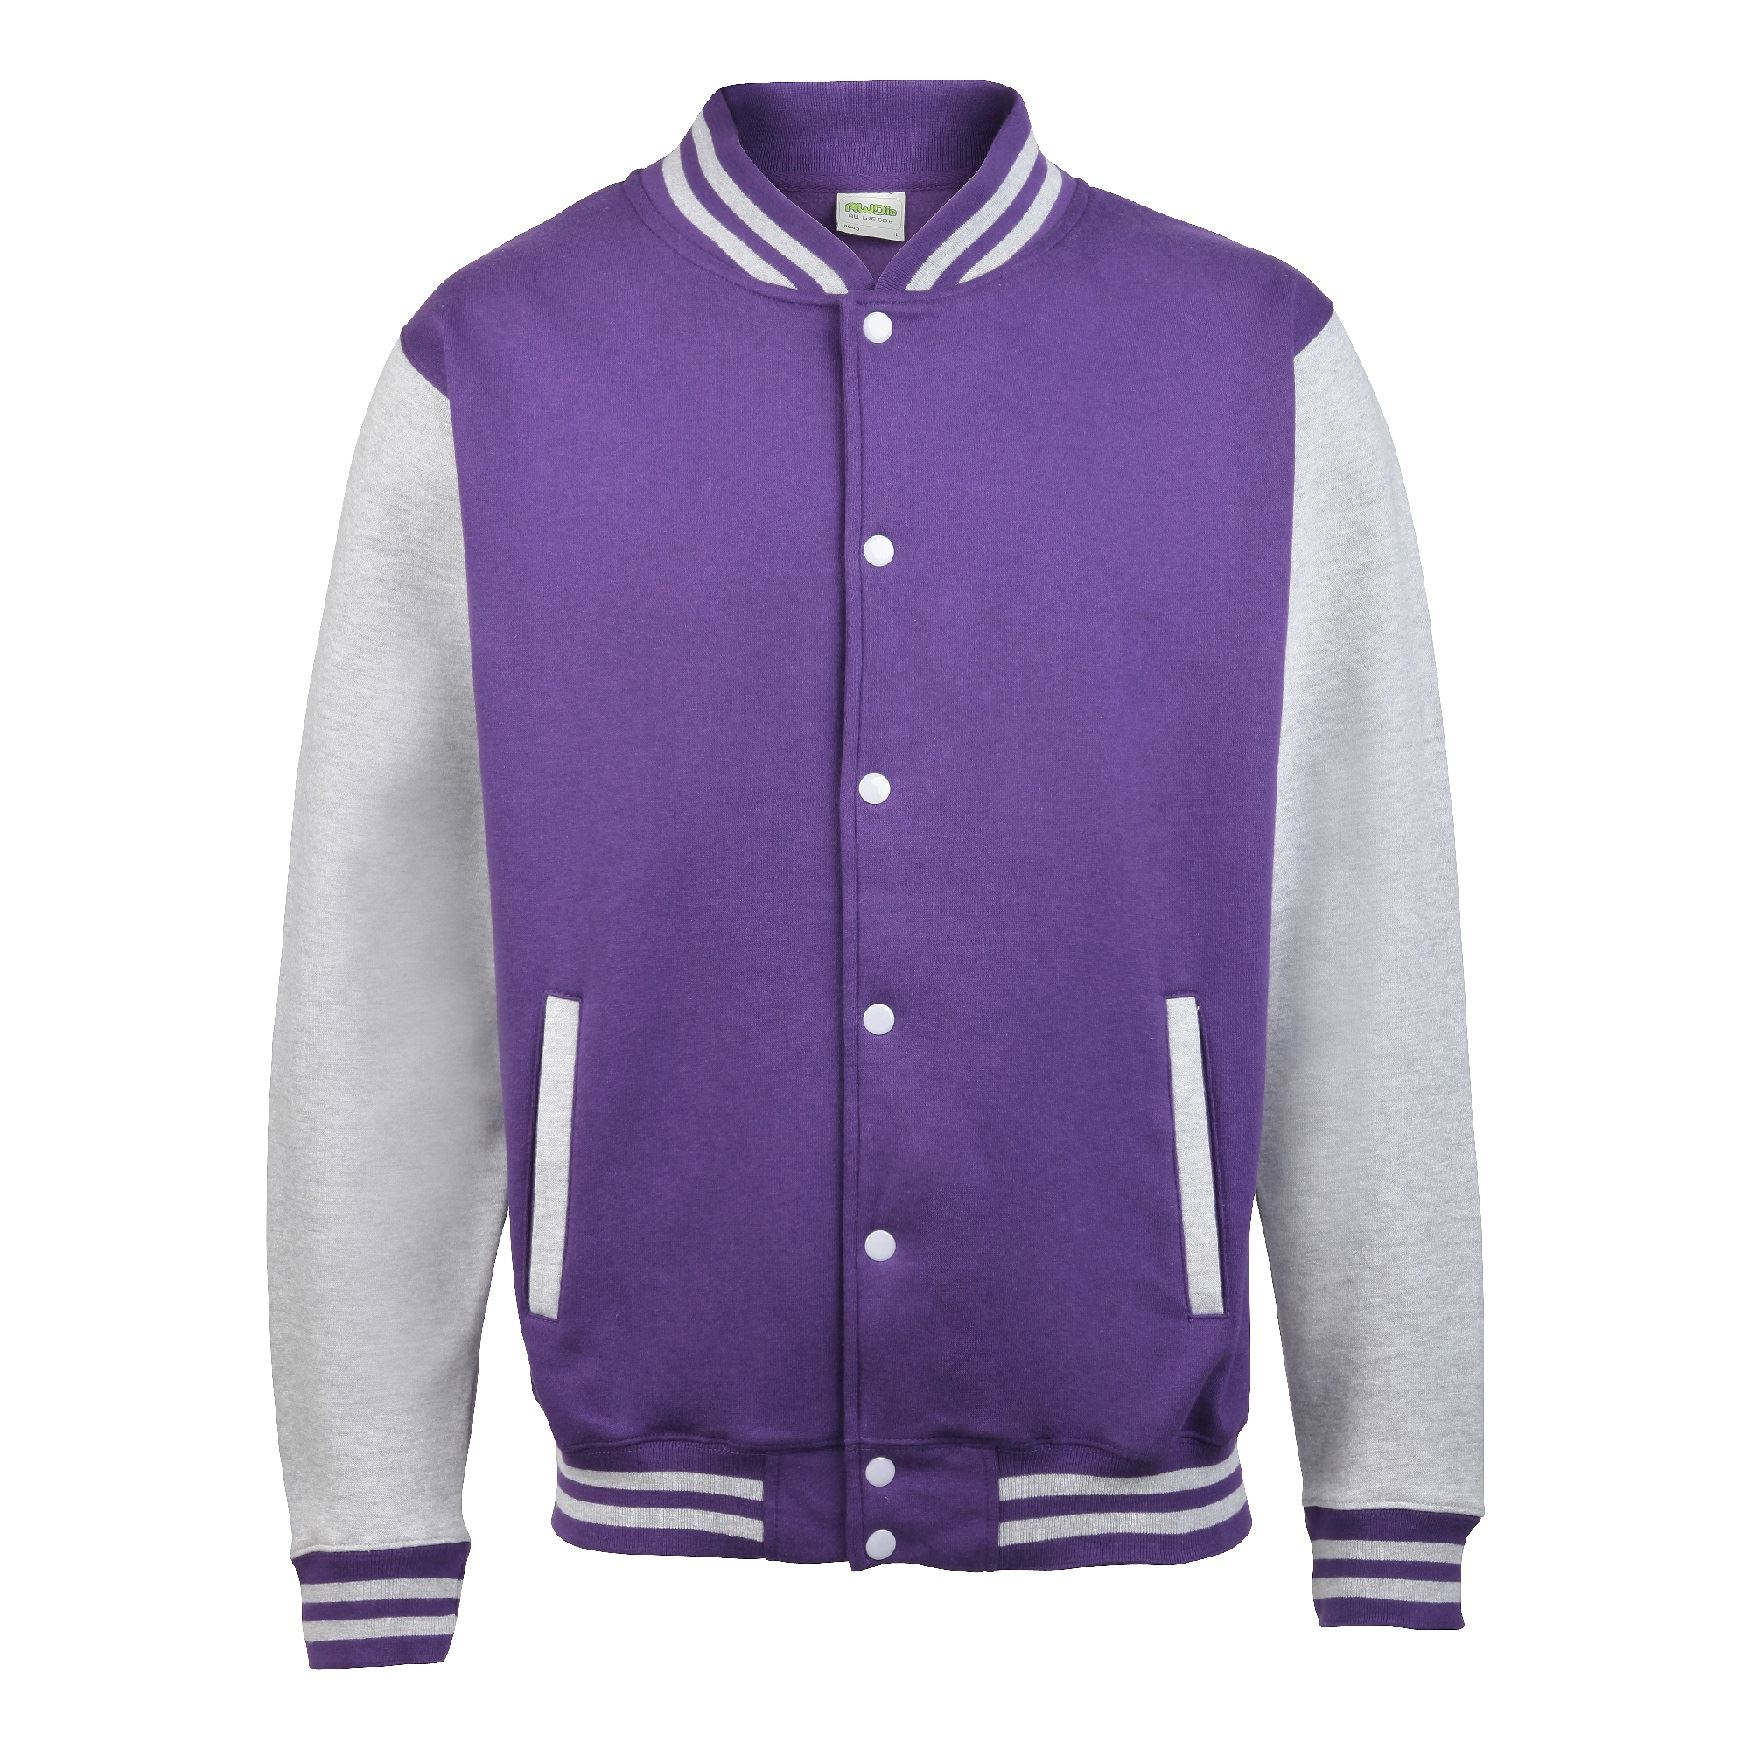 Awdis Varsity Mens Jacket American Style Letterman Ladies College Jh043 Jacket Ebay